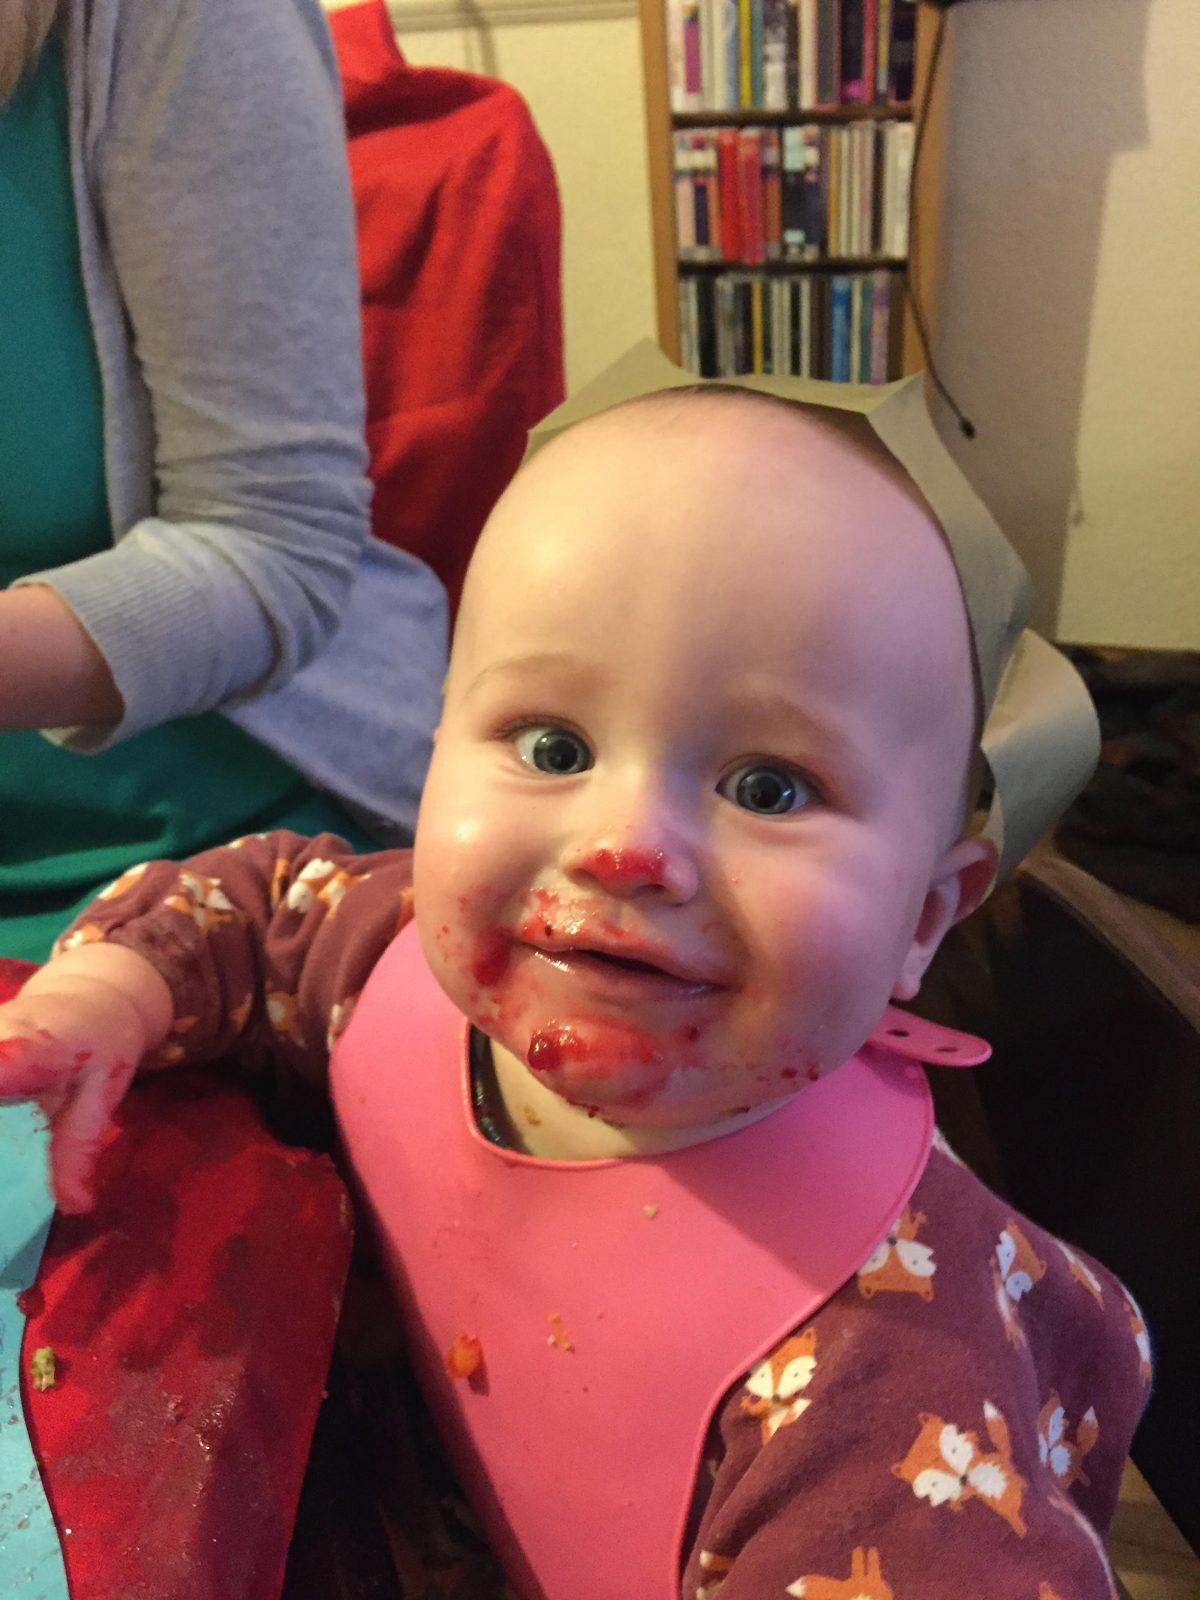 Nicola and Dexter's Baby Led Weaning Journey